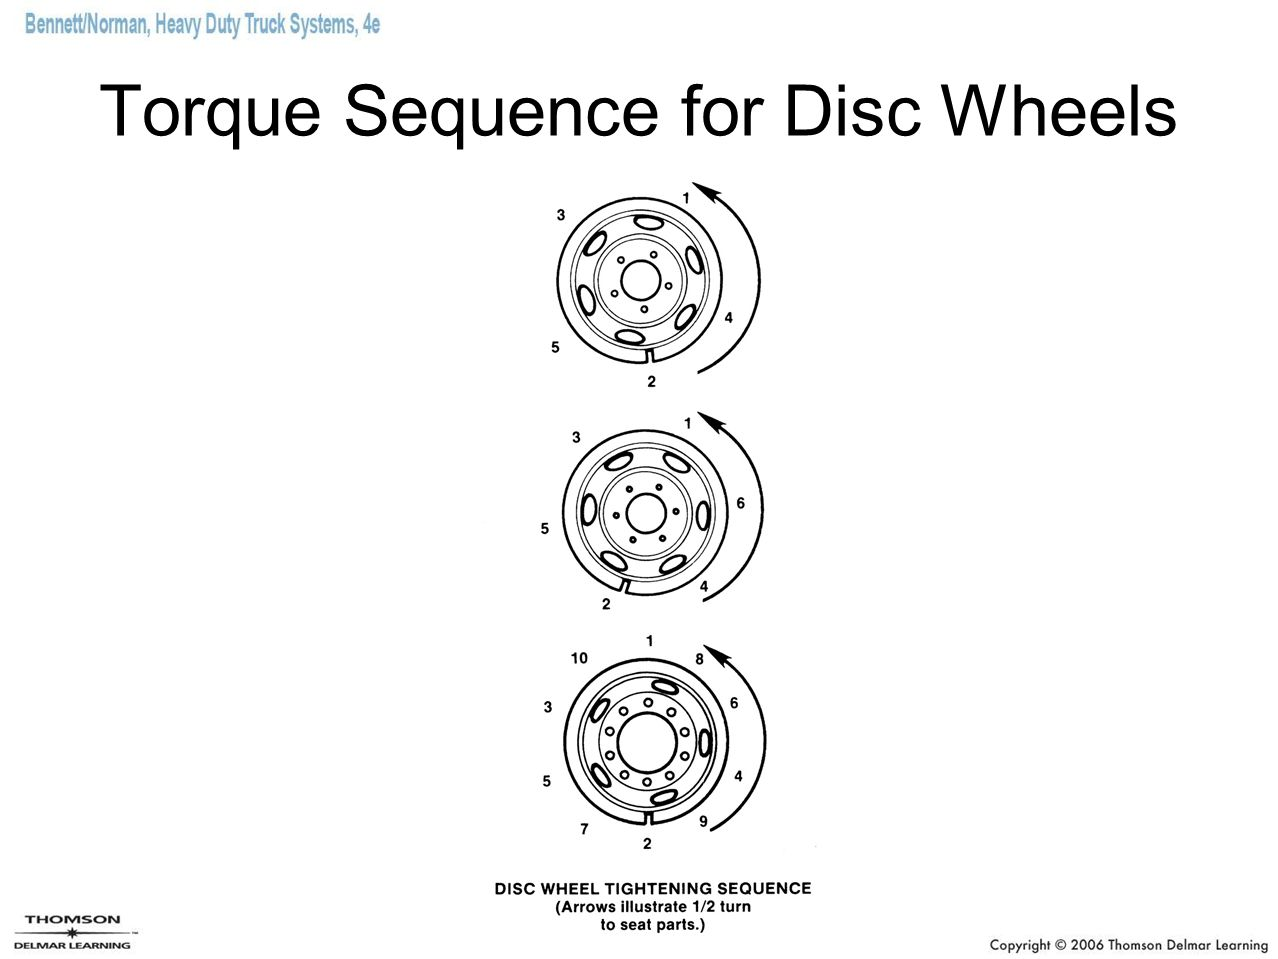 Torque Sequence for Disc Wheels